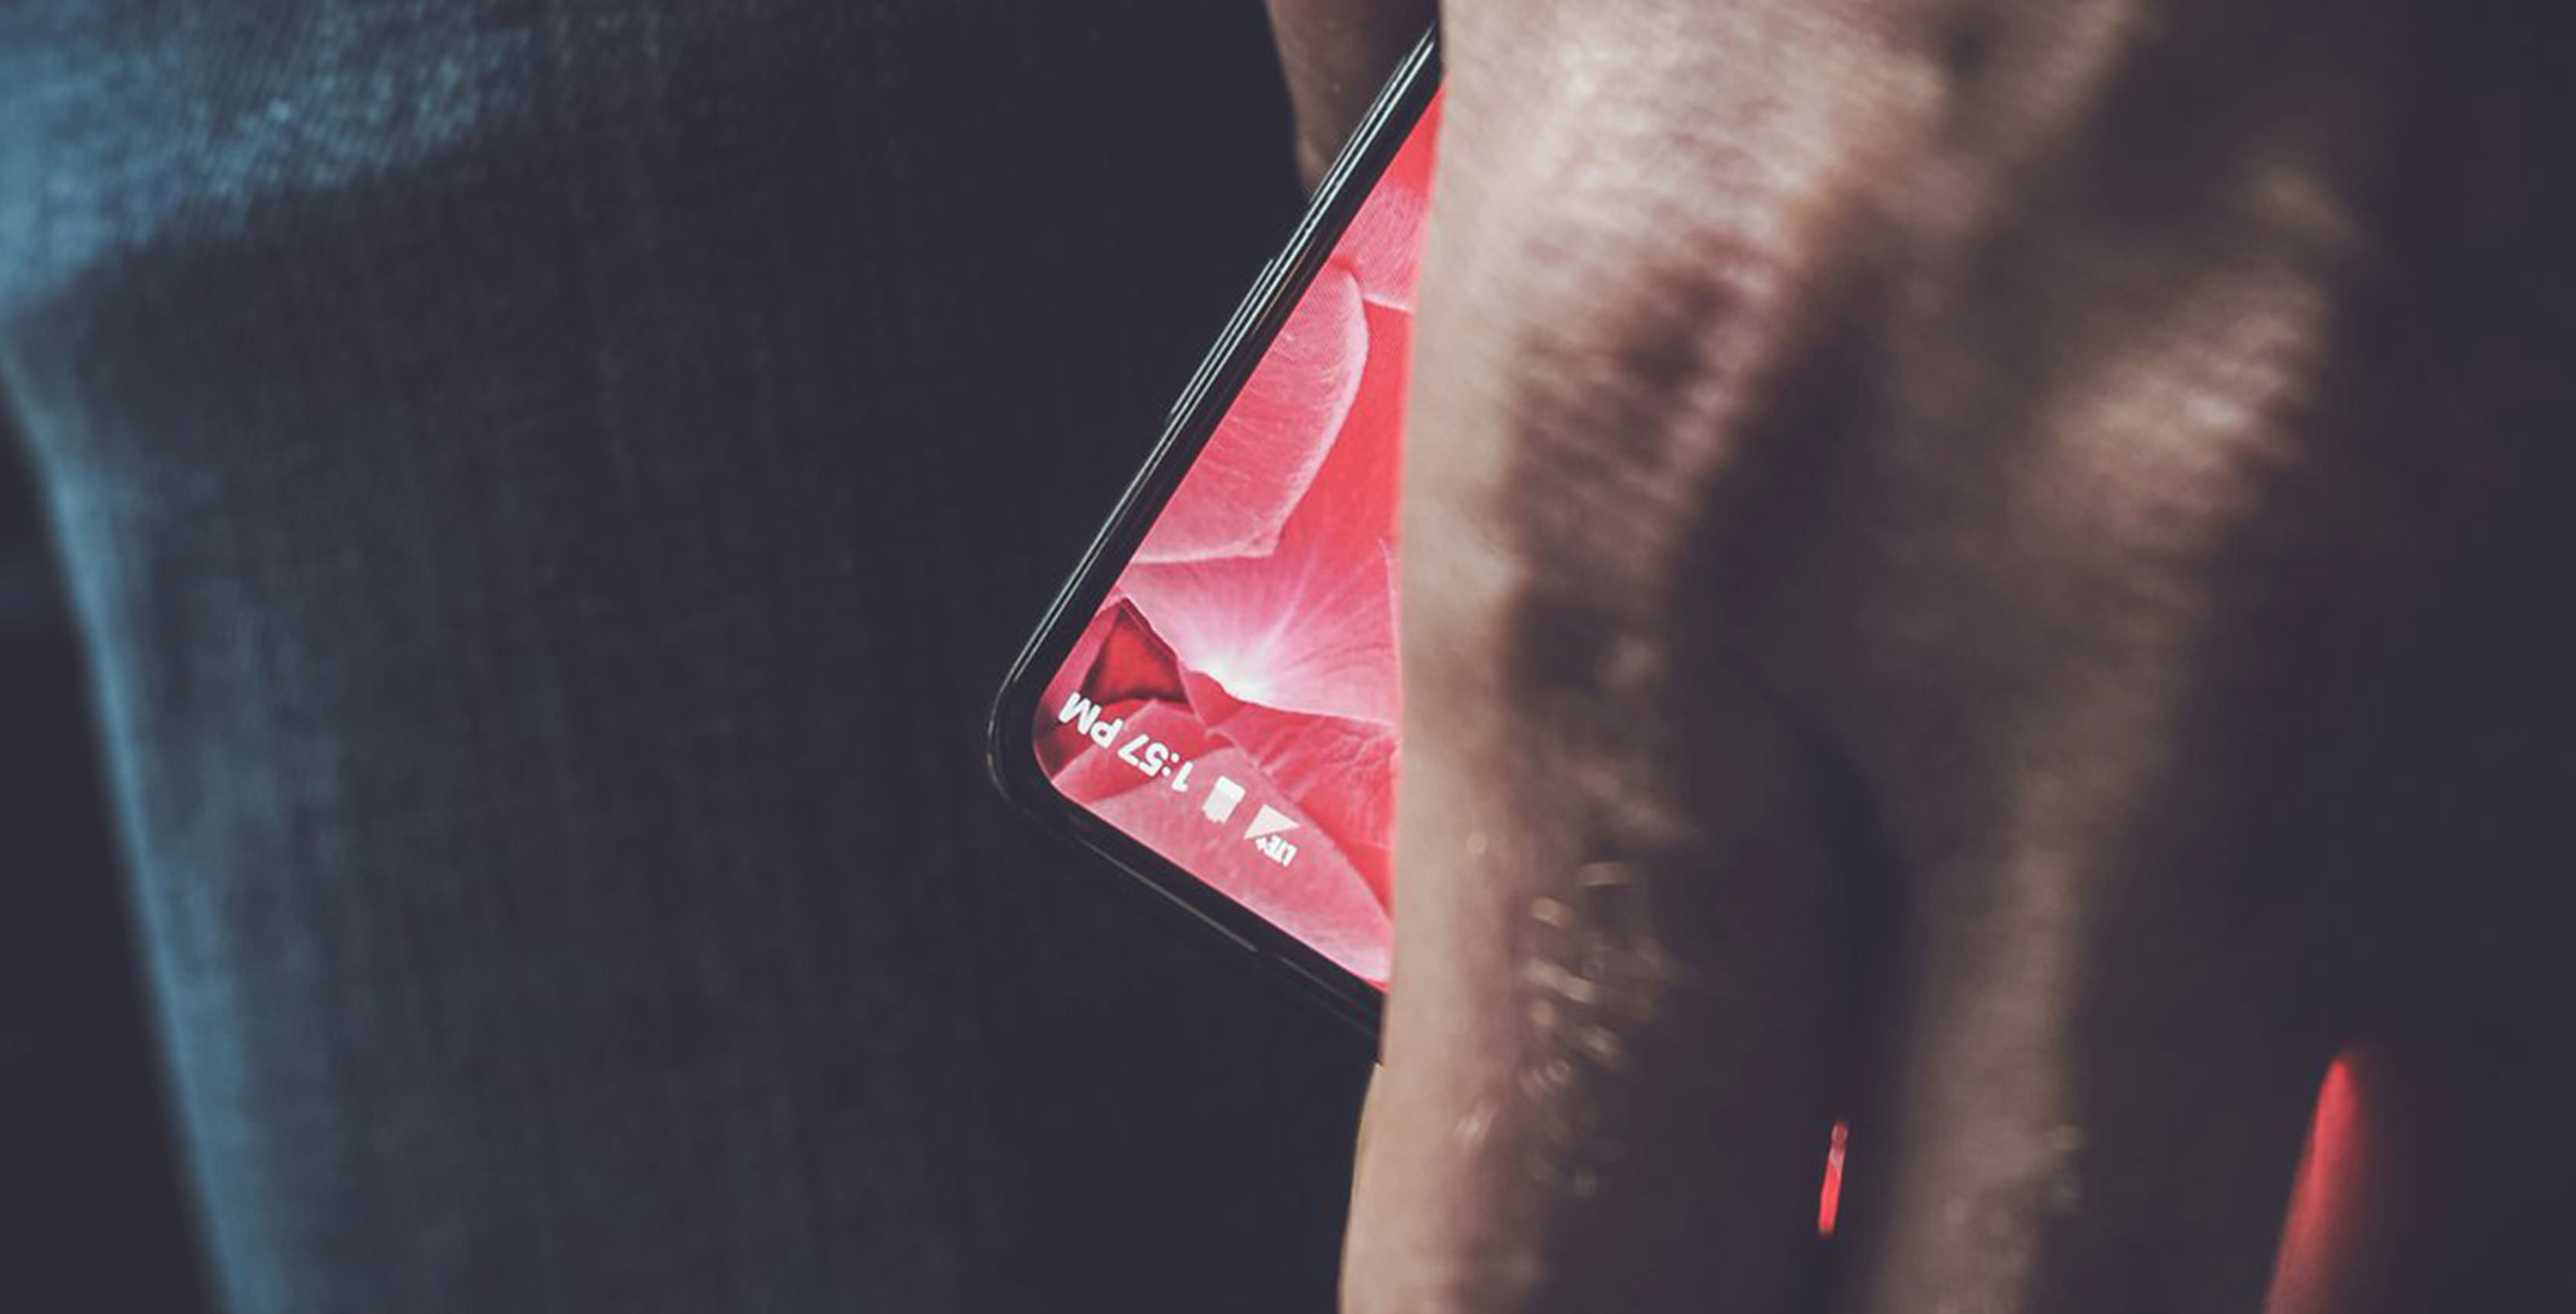 Andy Rubin new smartphone